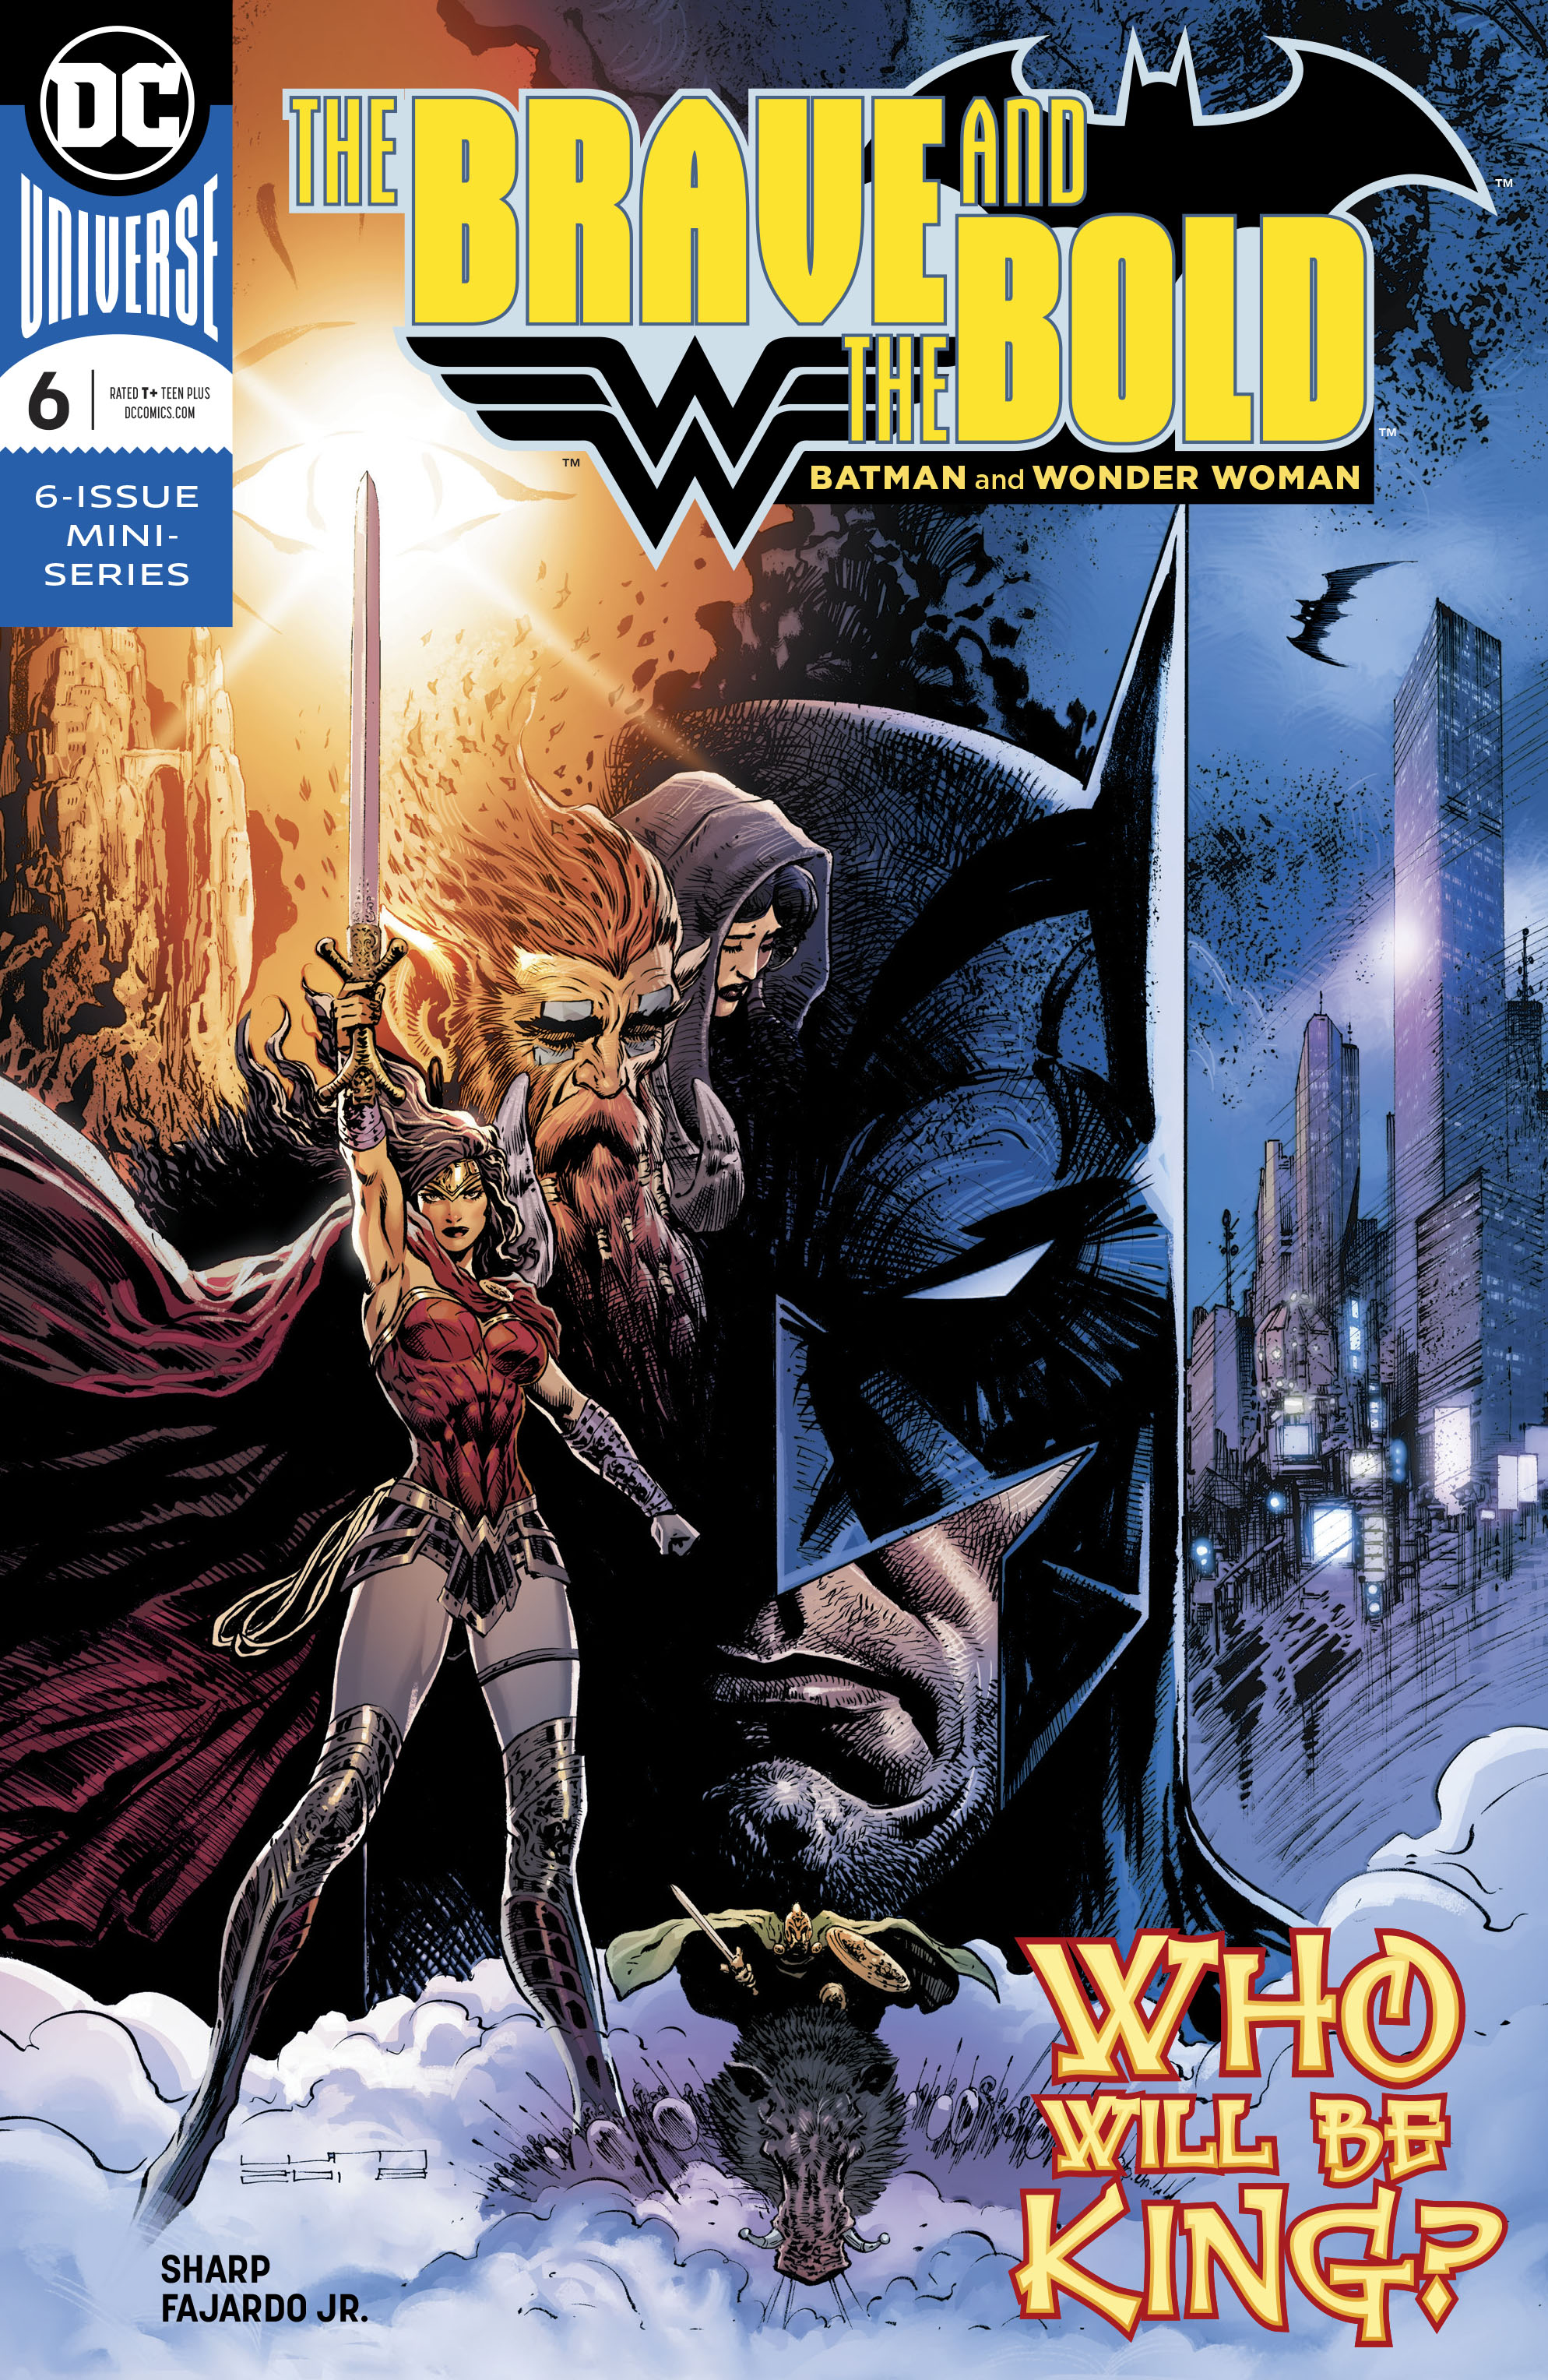 BRAVE & THE BOLD BATMAN & WONDER WOMAN #6 (OF 6)